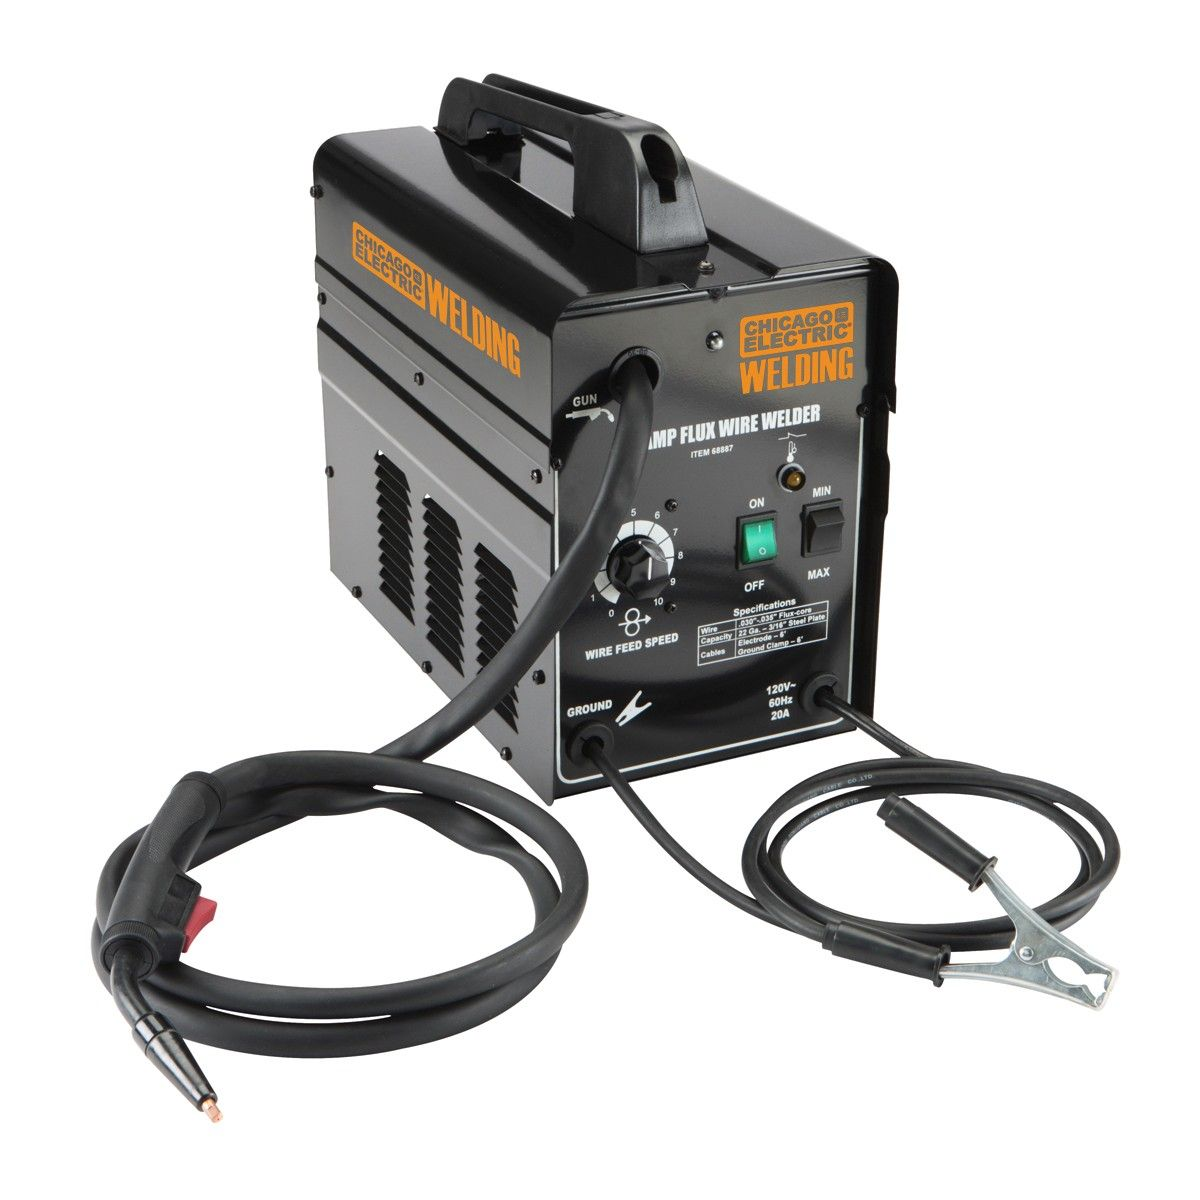 small resolution of  89 99 chicago electric welding 68887 90 amp flux wire welder black 89 99 chicago electric